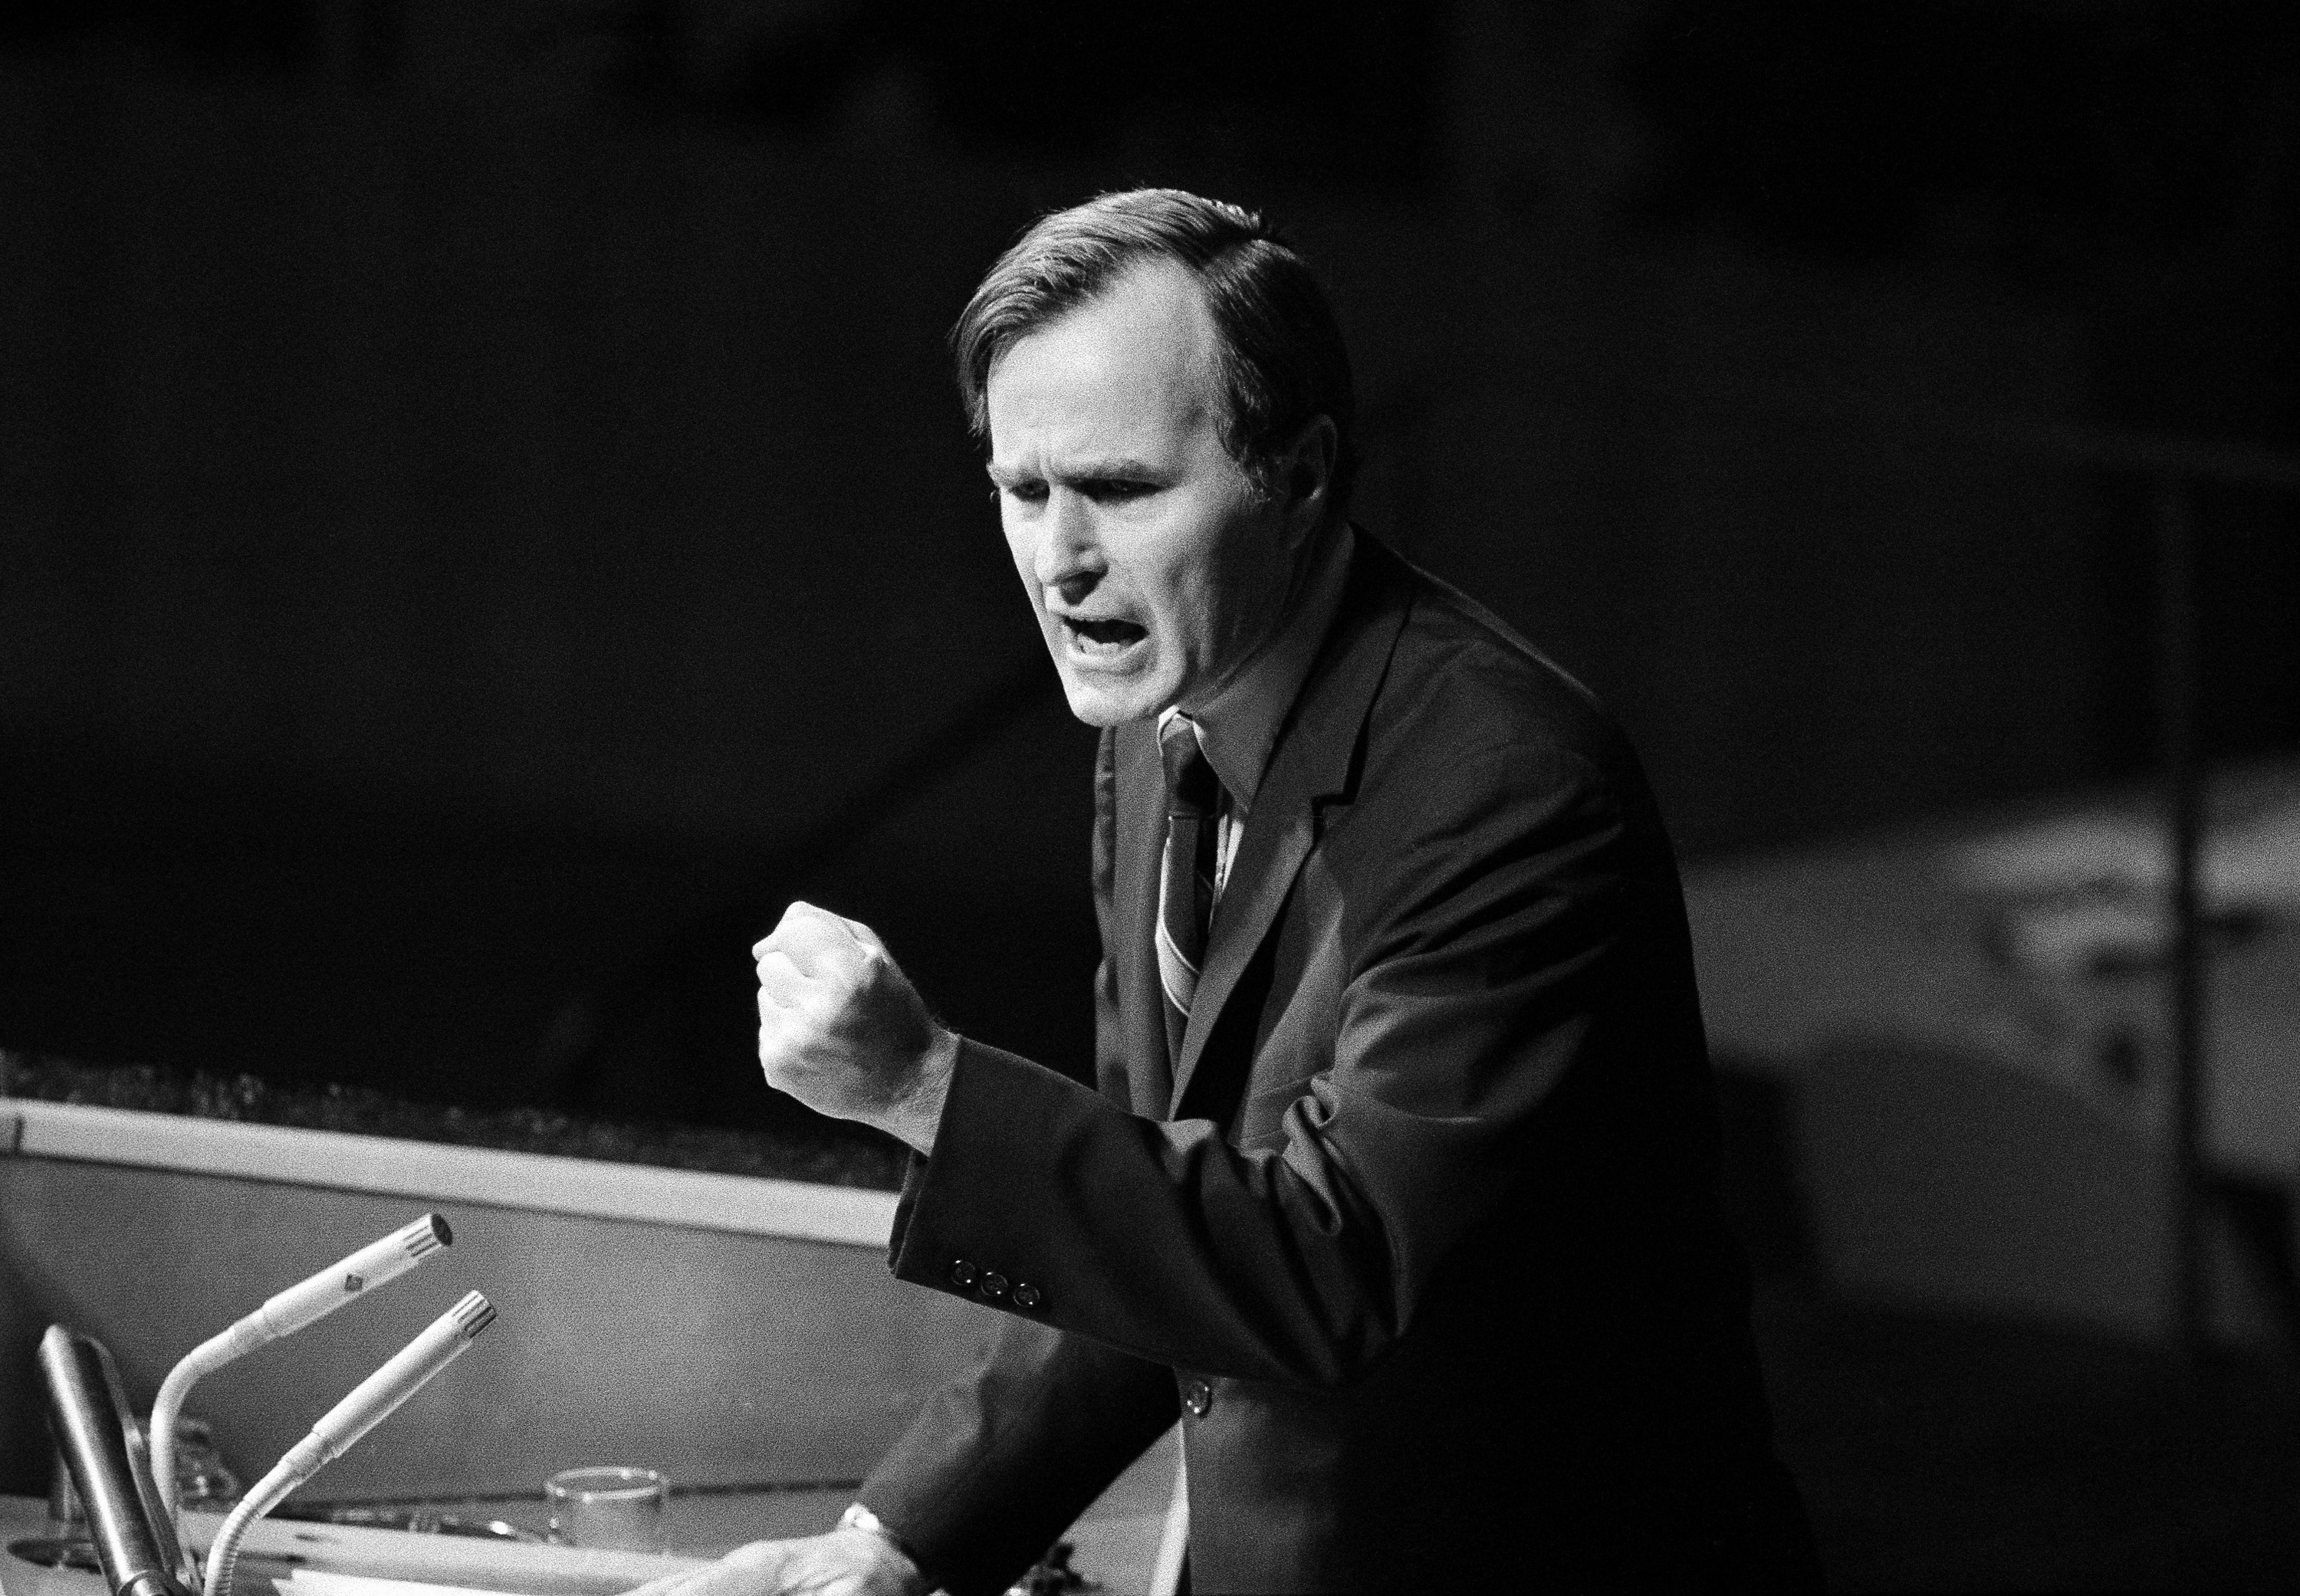 In this Oct. 18, 1971, photo, U.S. Ambassador George H.W. Bush gestures as he addresses the United Nations General Assembly during the China debate. He denied the U.S. formula was either a